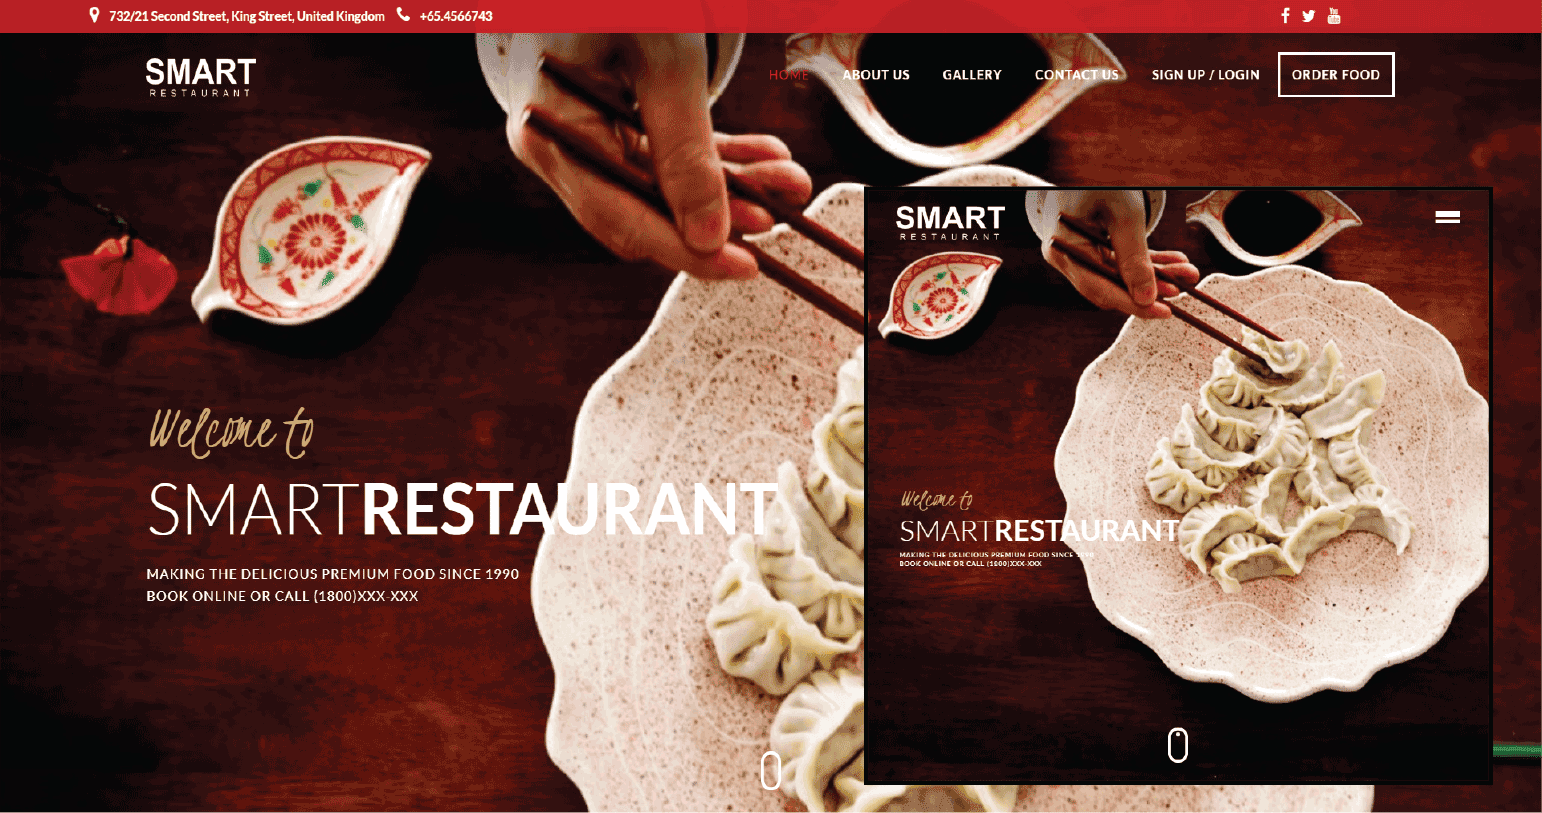 assian-style-smart-restaurant